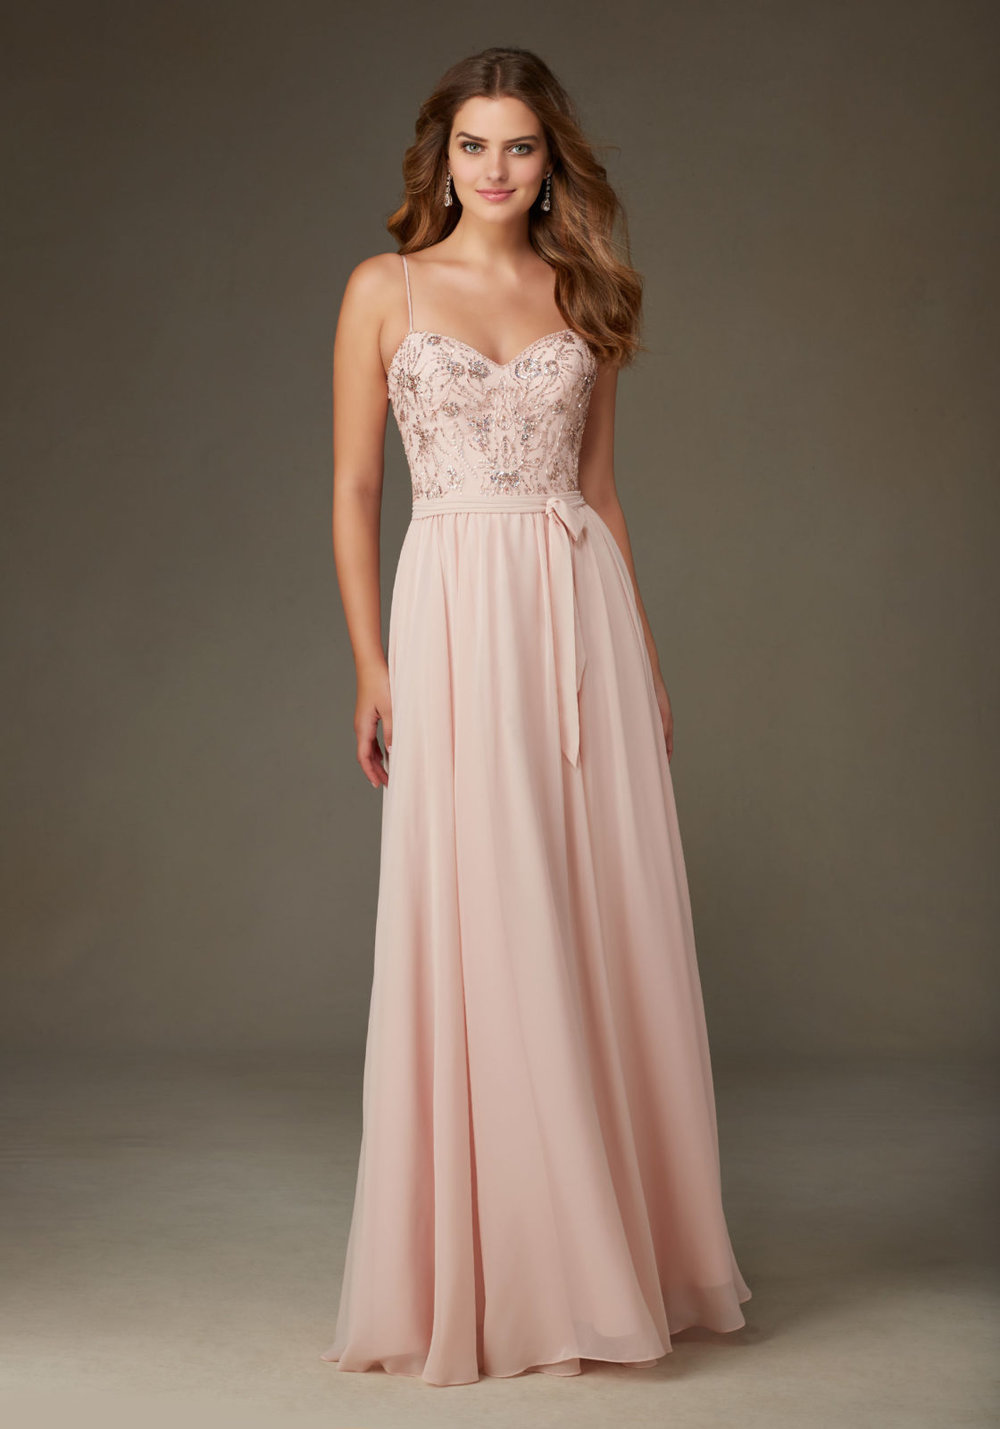 Chiffon with Beading Spaghetti Bridesmaid Dress